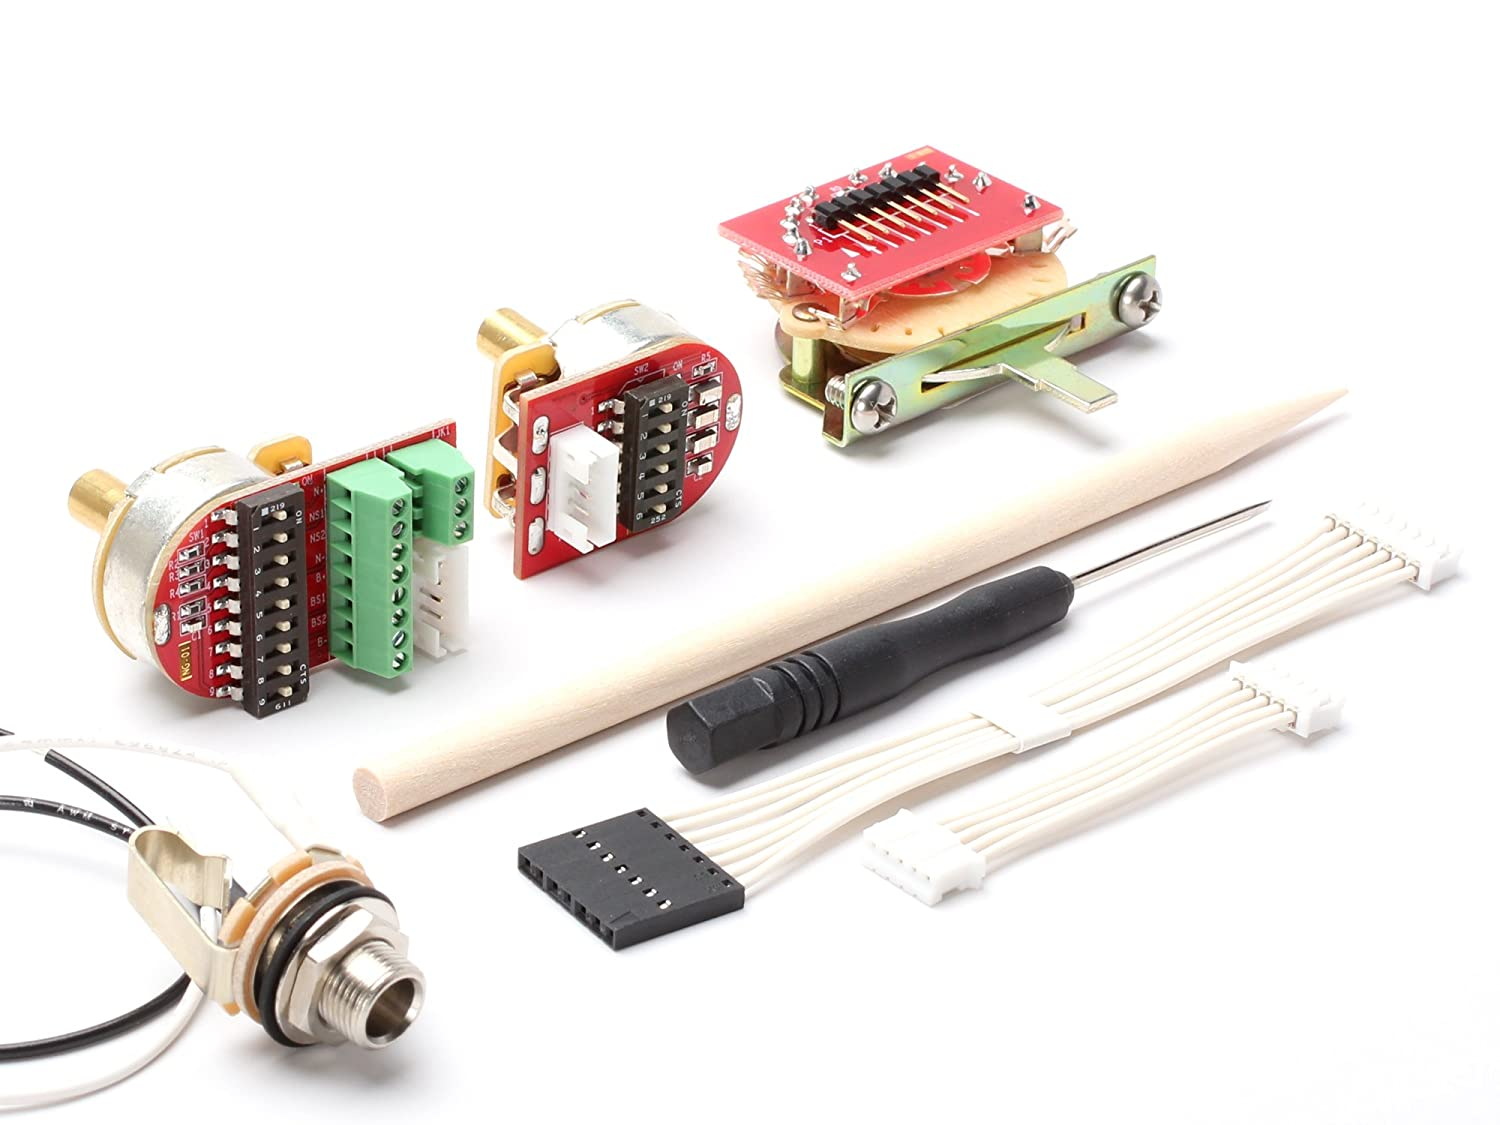 Toneshaper Nextgen Wiring Kit Solder Free Ng01 W 5 Guitar Also Gibson Es 335 Harness Way Switch Tele Many Other Guitars 2 Controls Musical Instruments